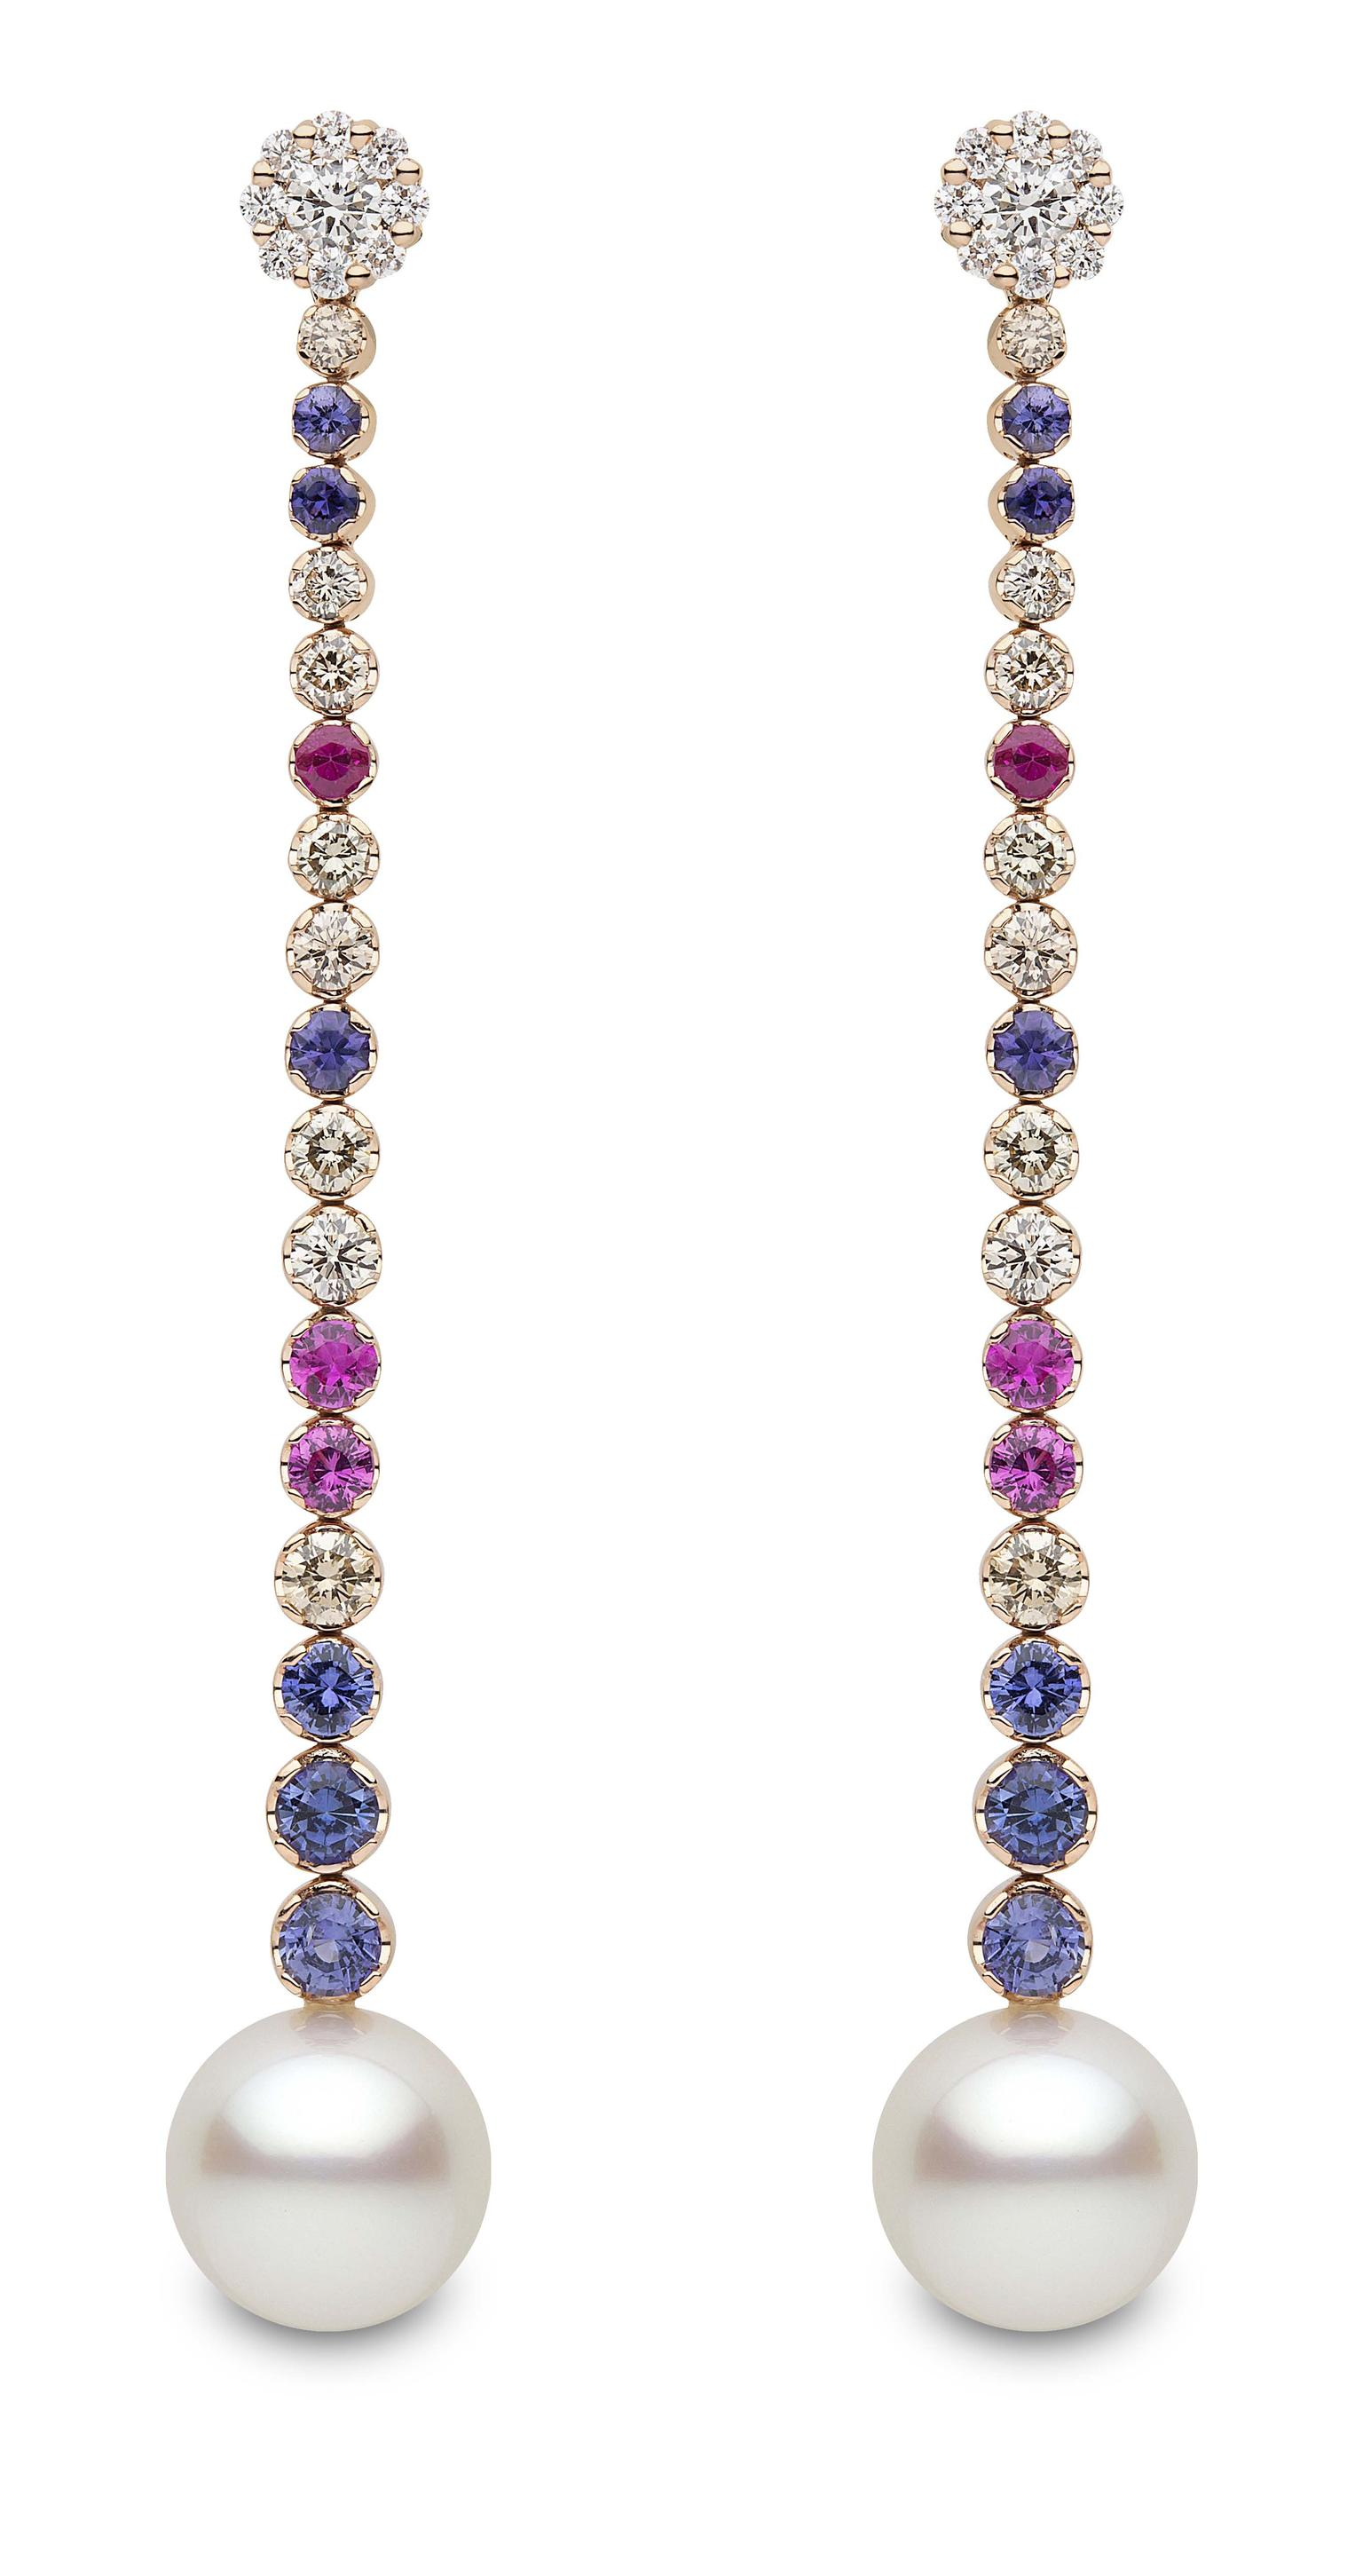 Yoko London South Sea pearl earrings with multi-coloured sapphires (£POA).